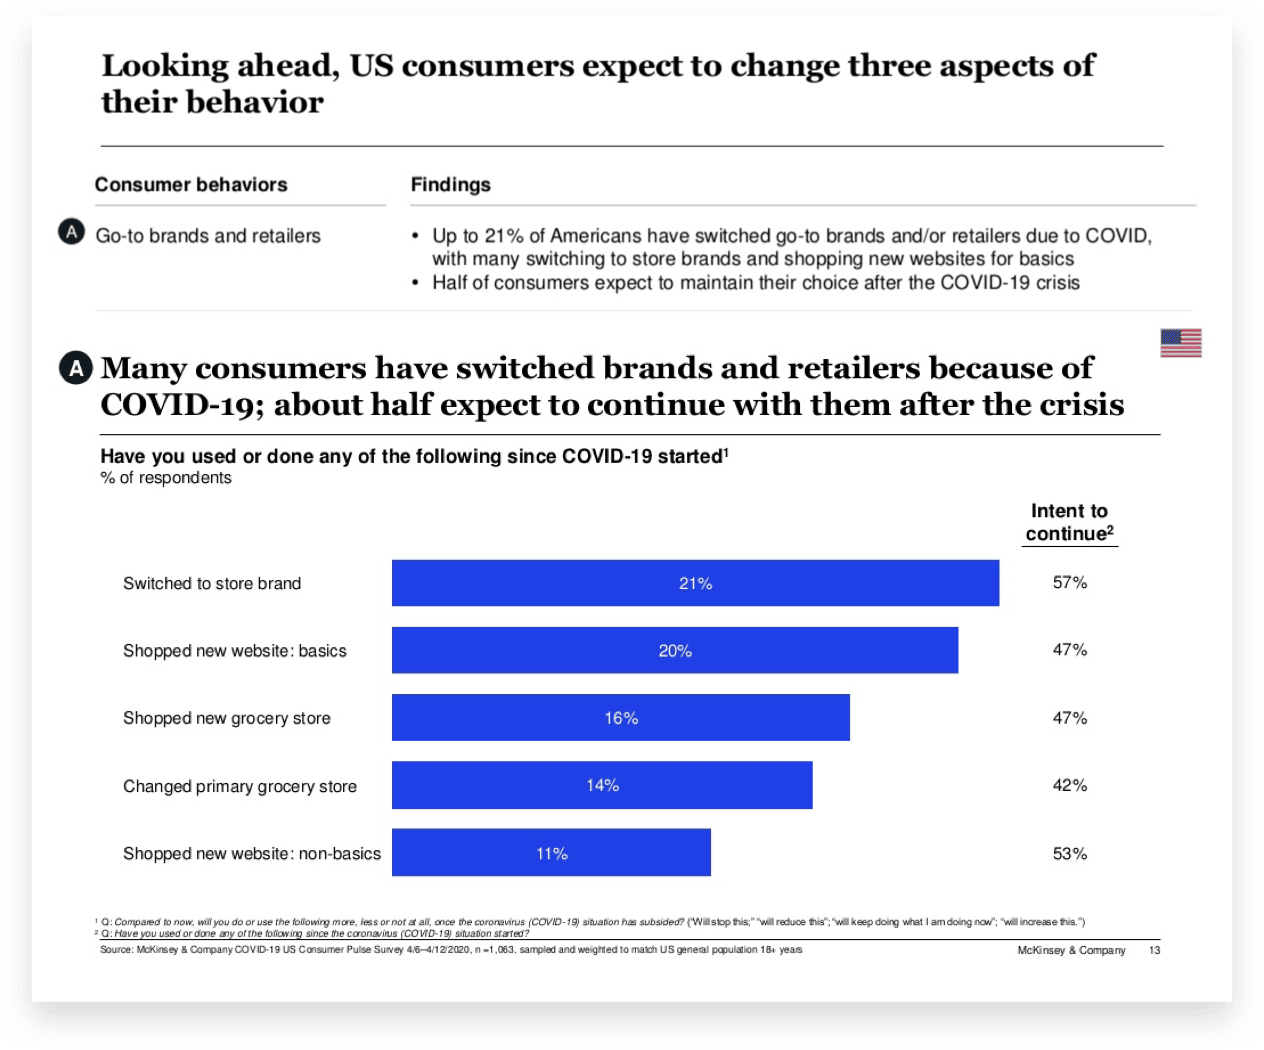 Consumers Have Switch Brands Because of COVID-19